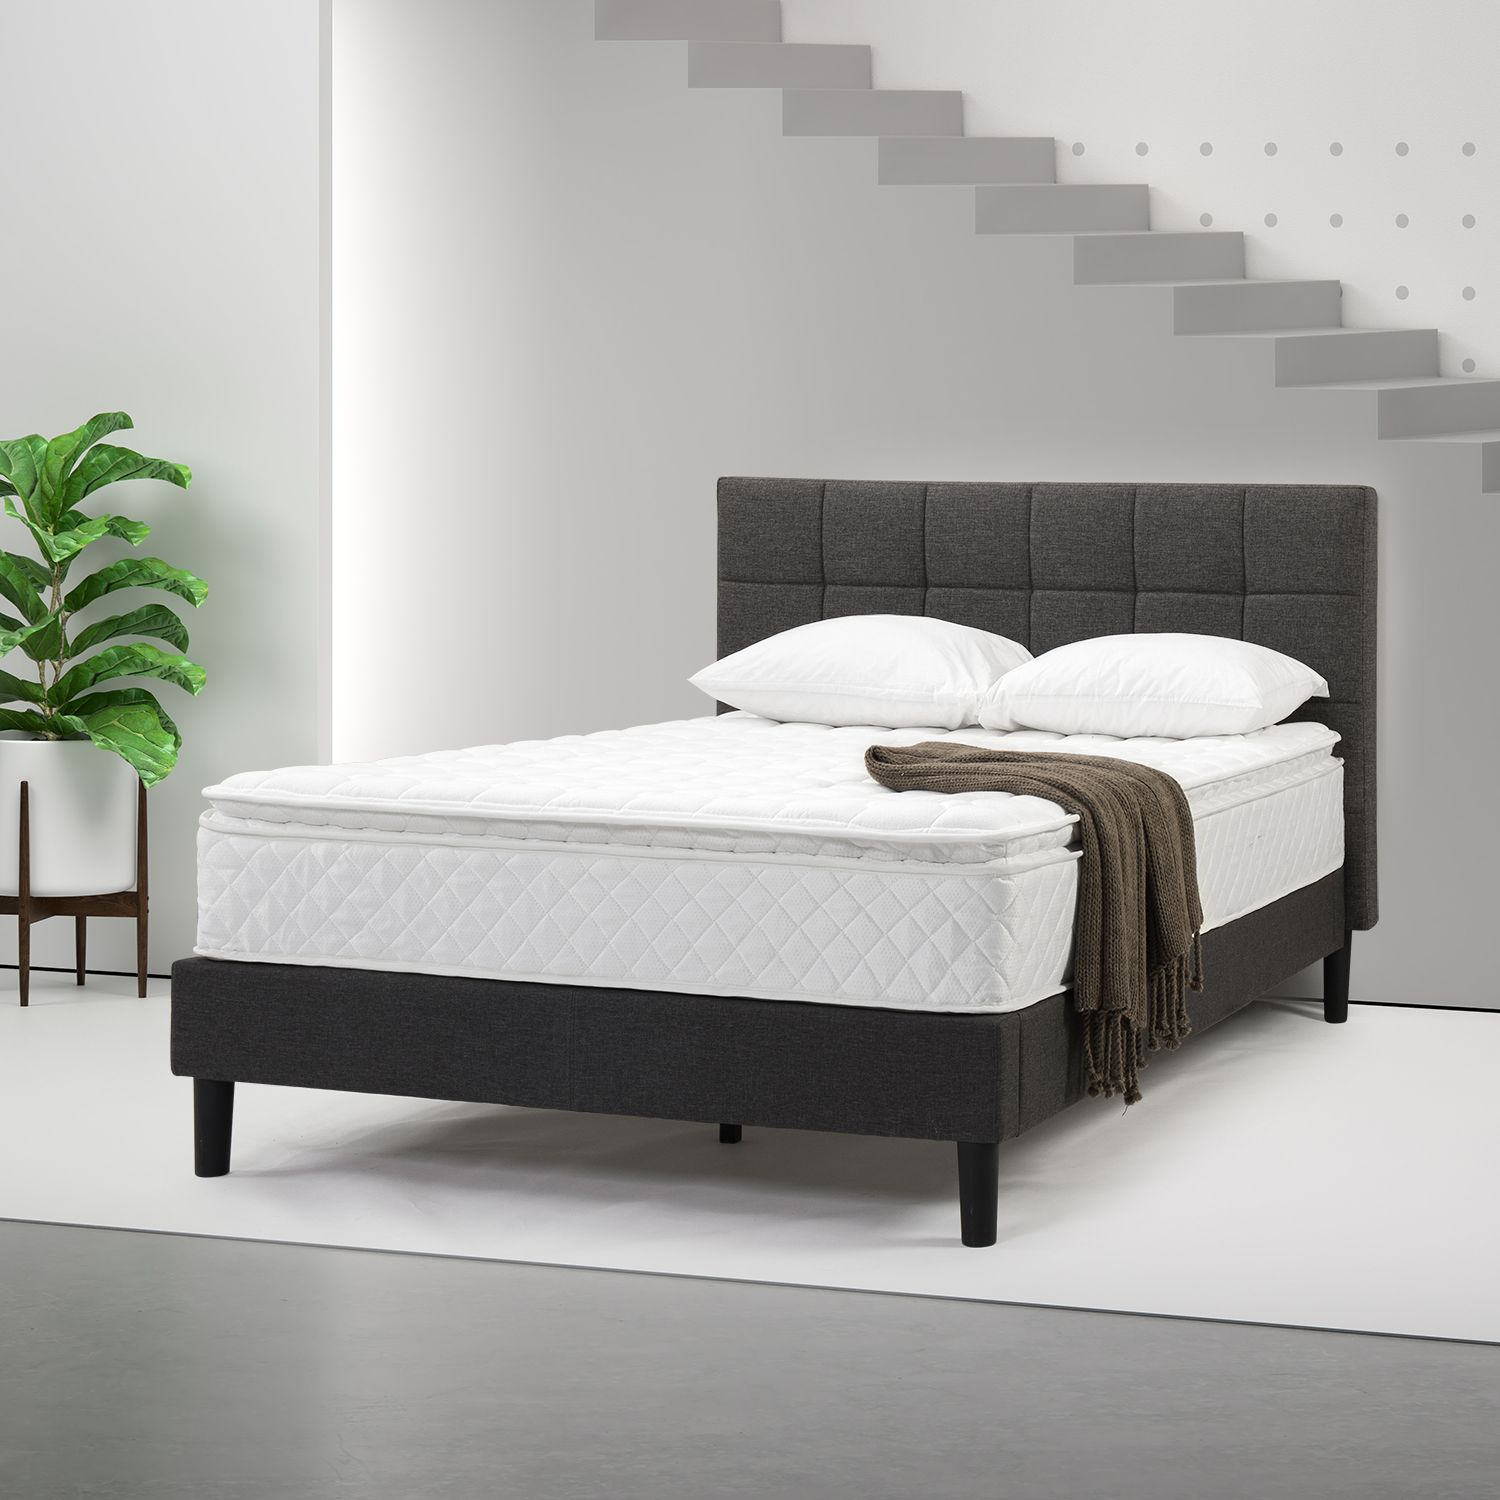 Home Mattress, Metal platform bed, Bed frame